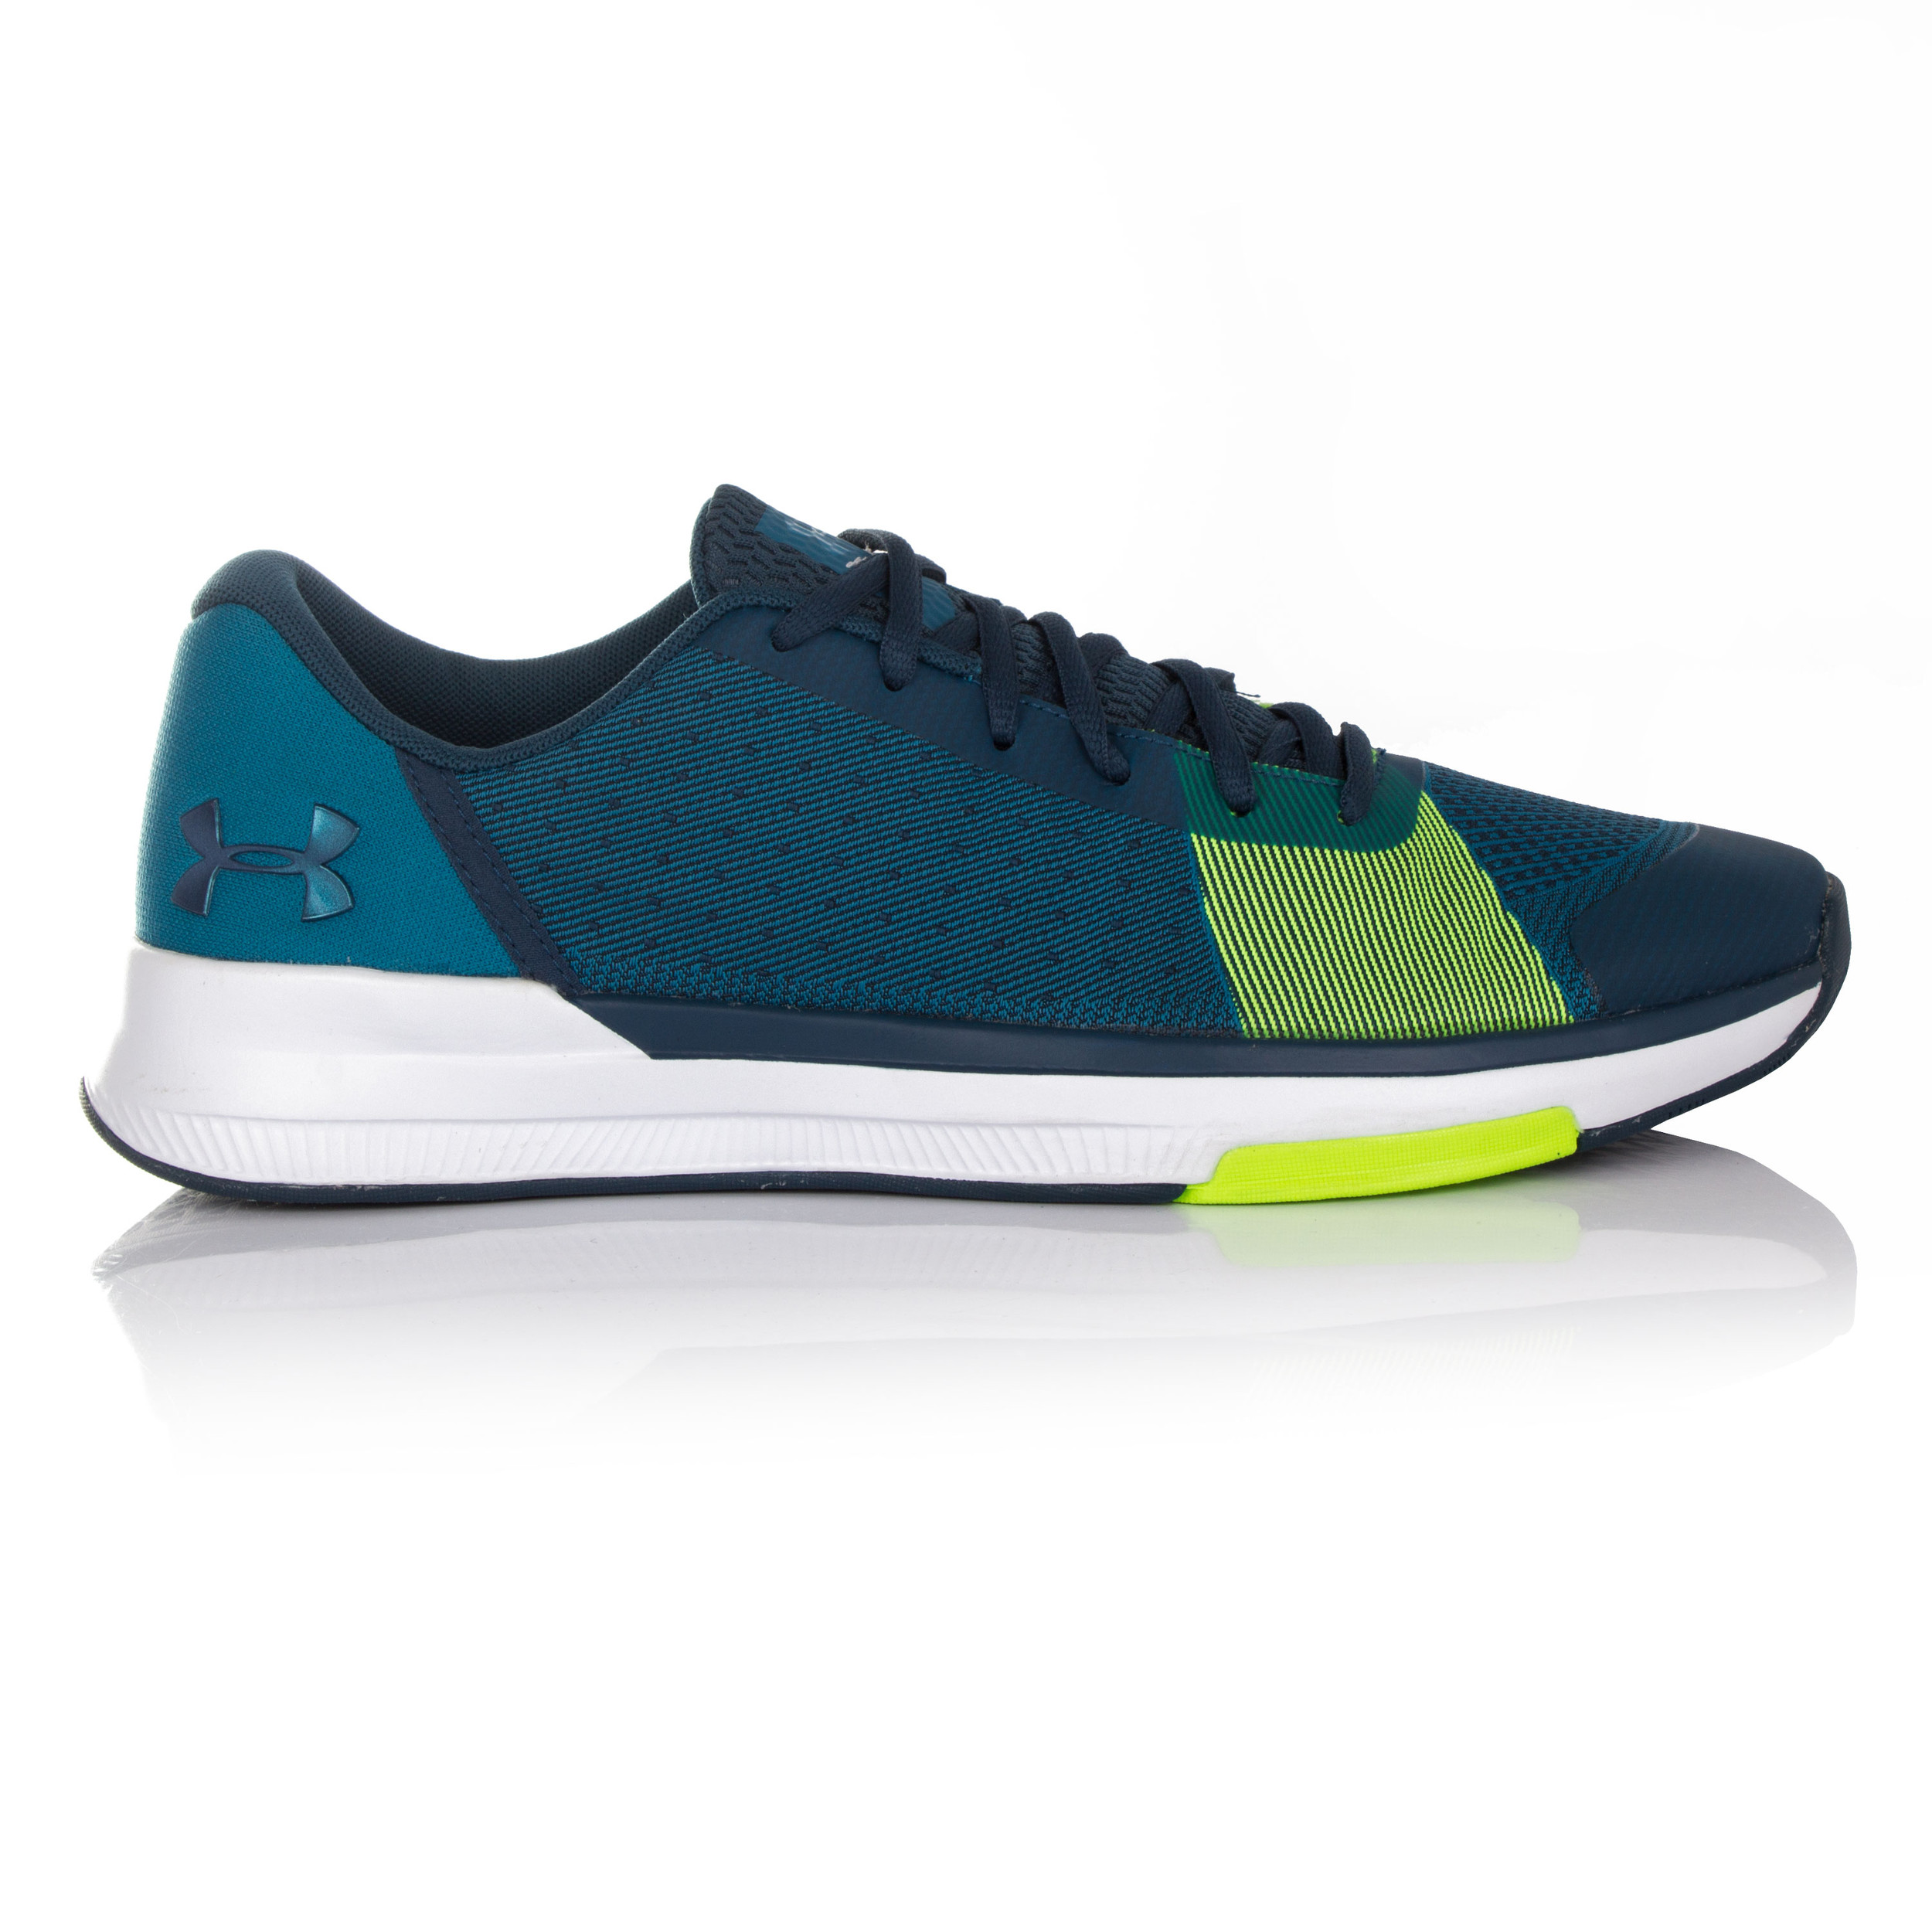 Running Or Training Shoes For Zumba